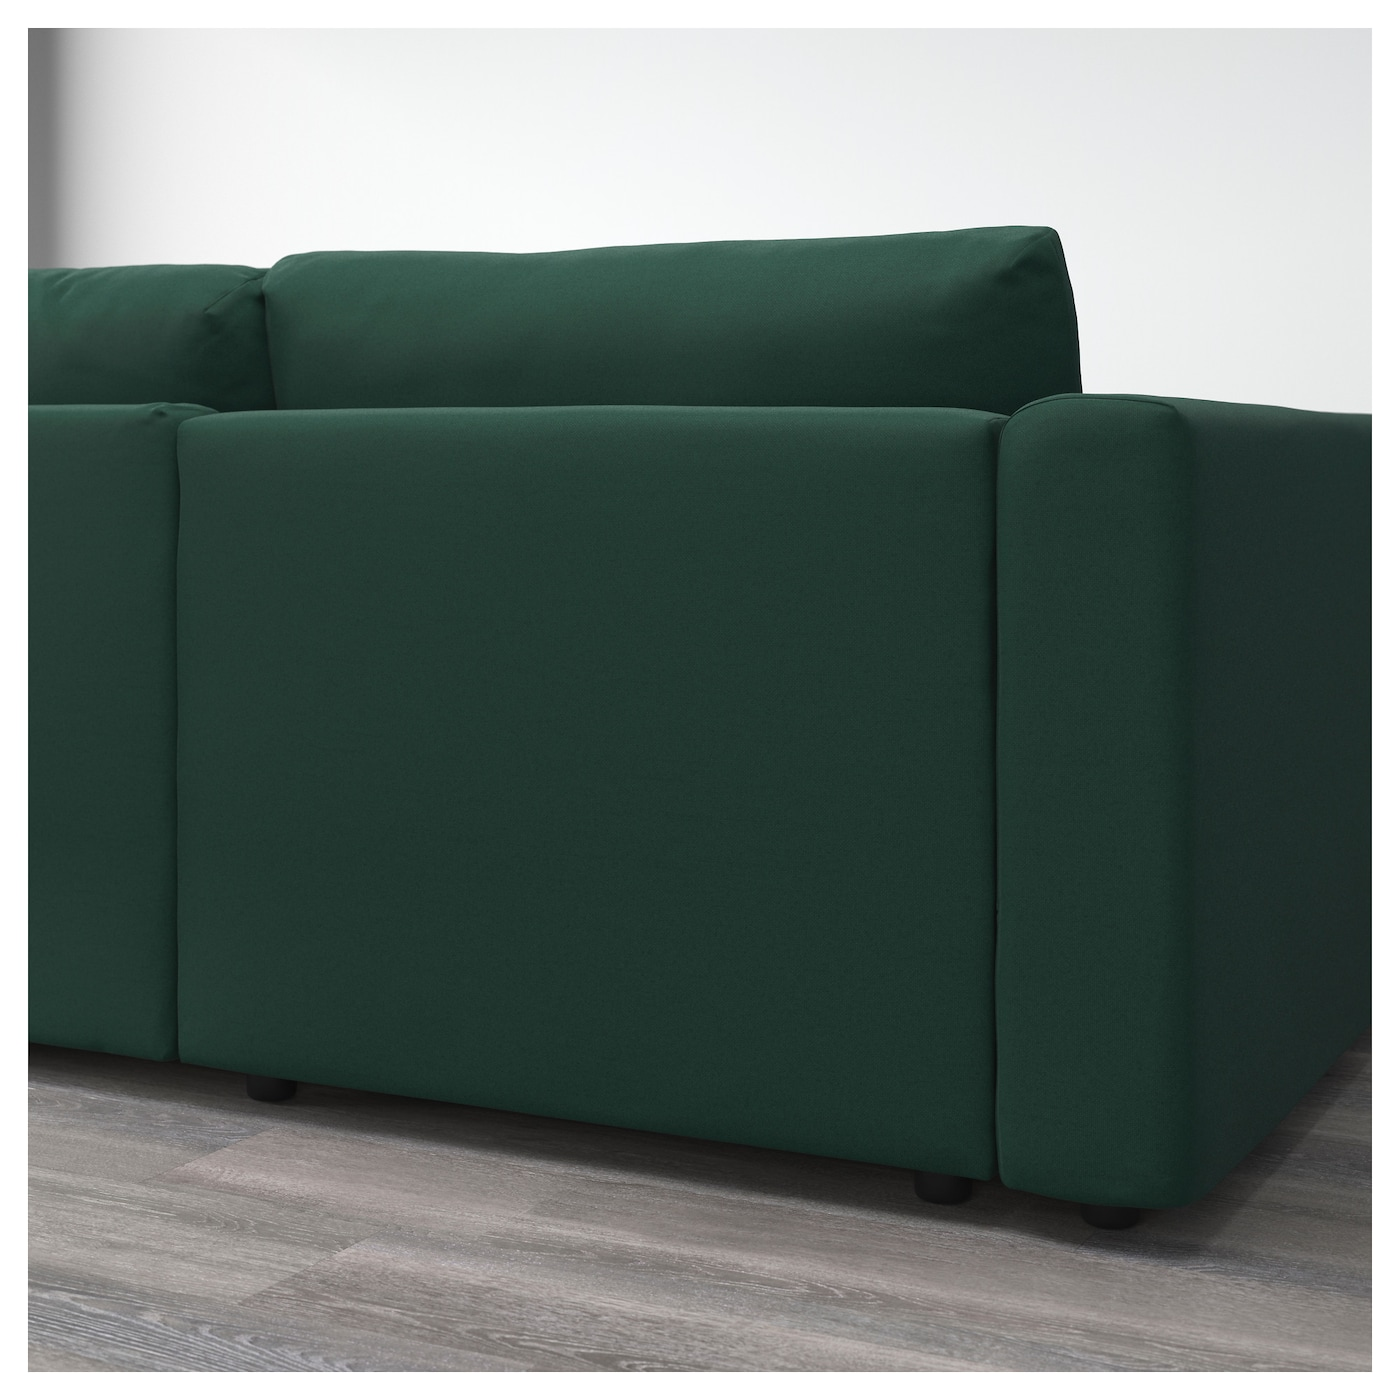 vimle canap d 39 angle 5 places avec m ridienne gunnared vert fonc ikea. Black Bedroom Furniture Sets. Home Design Ideas